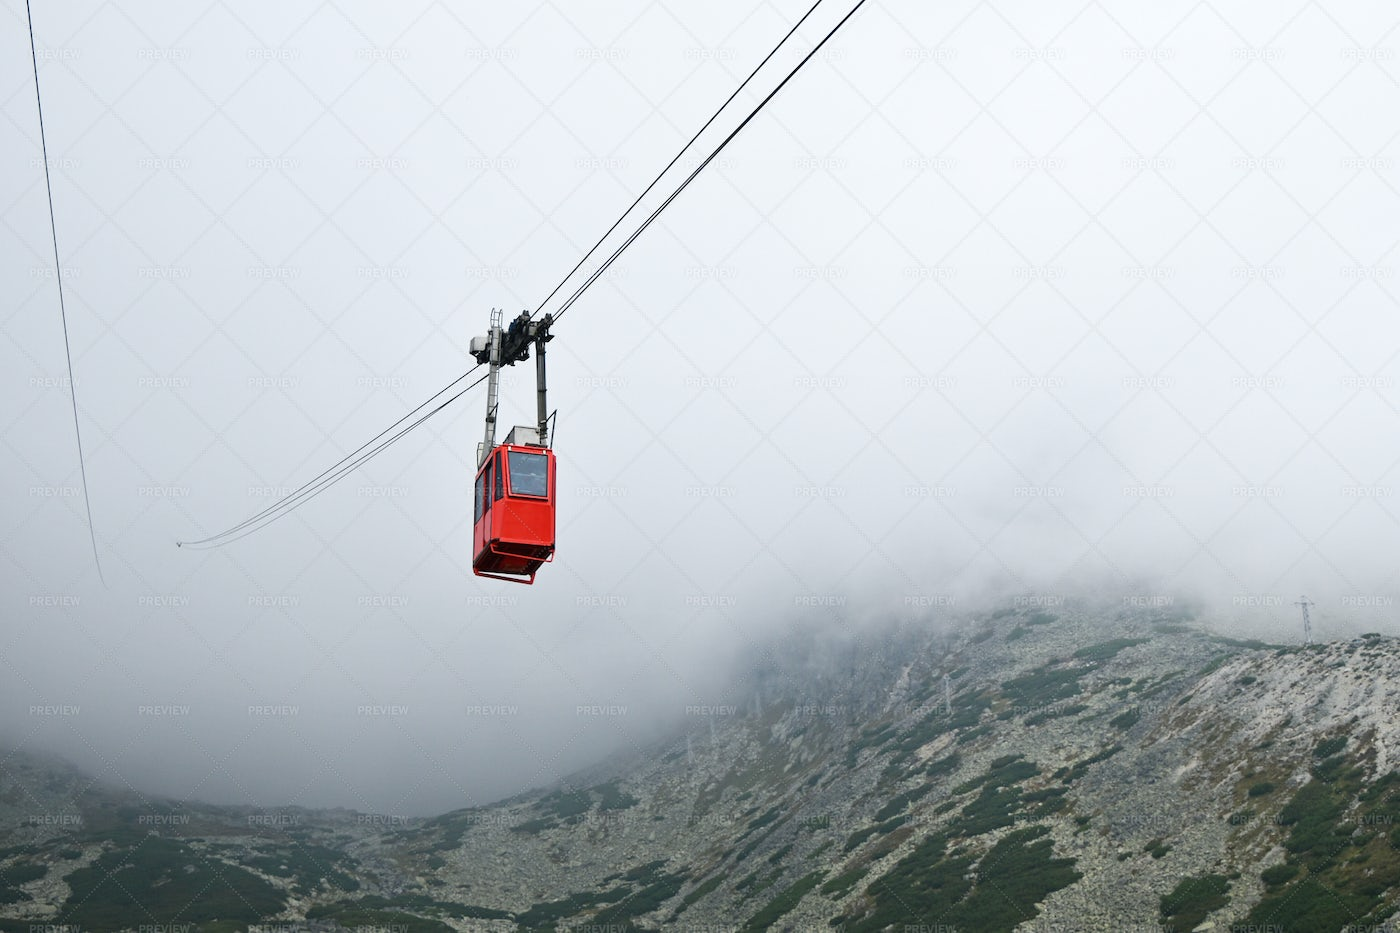 Cableway Car In Mountains: Stock Photos